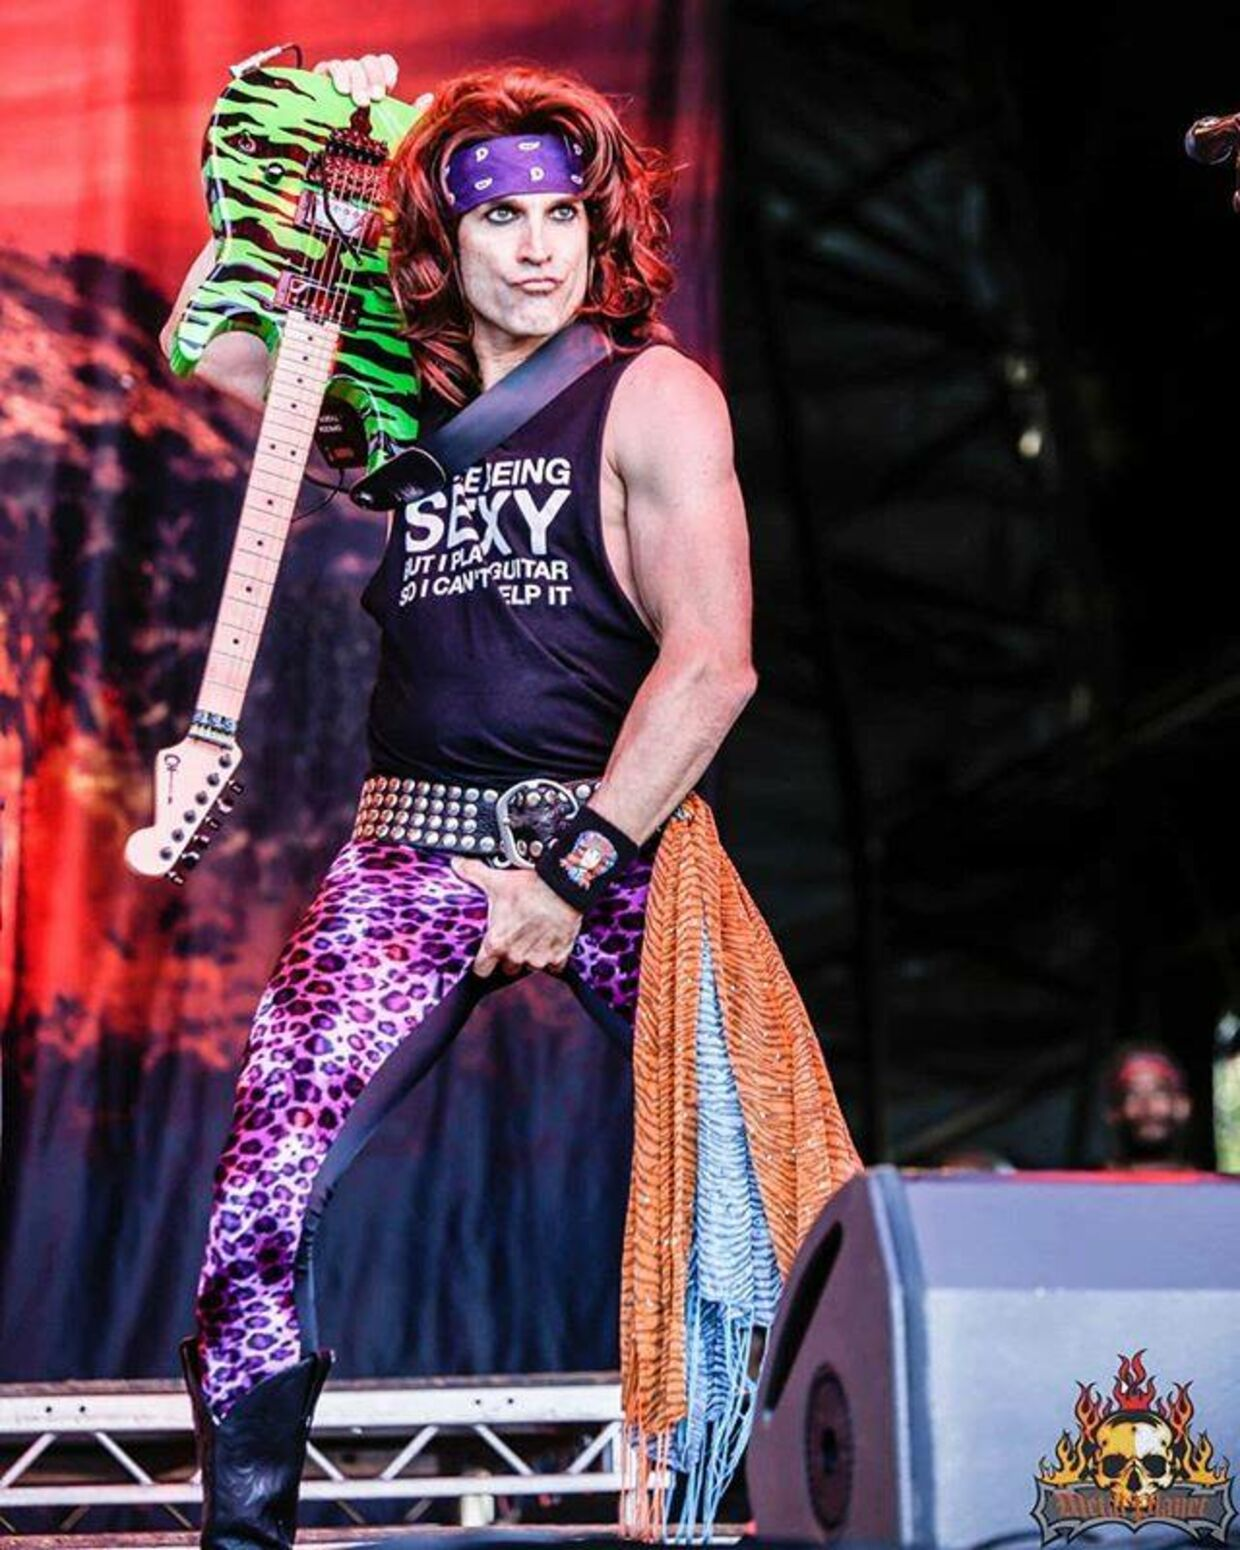 Russell 'Satchel' Perrish fra bandet Steel Panther